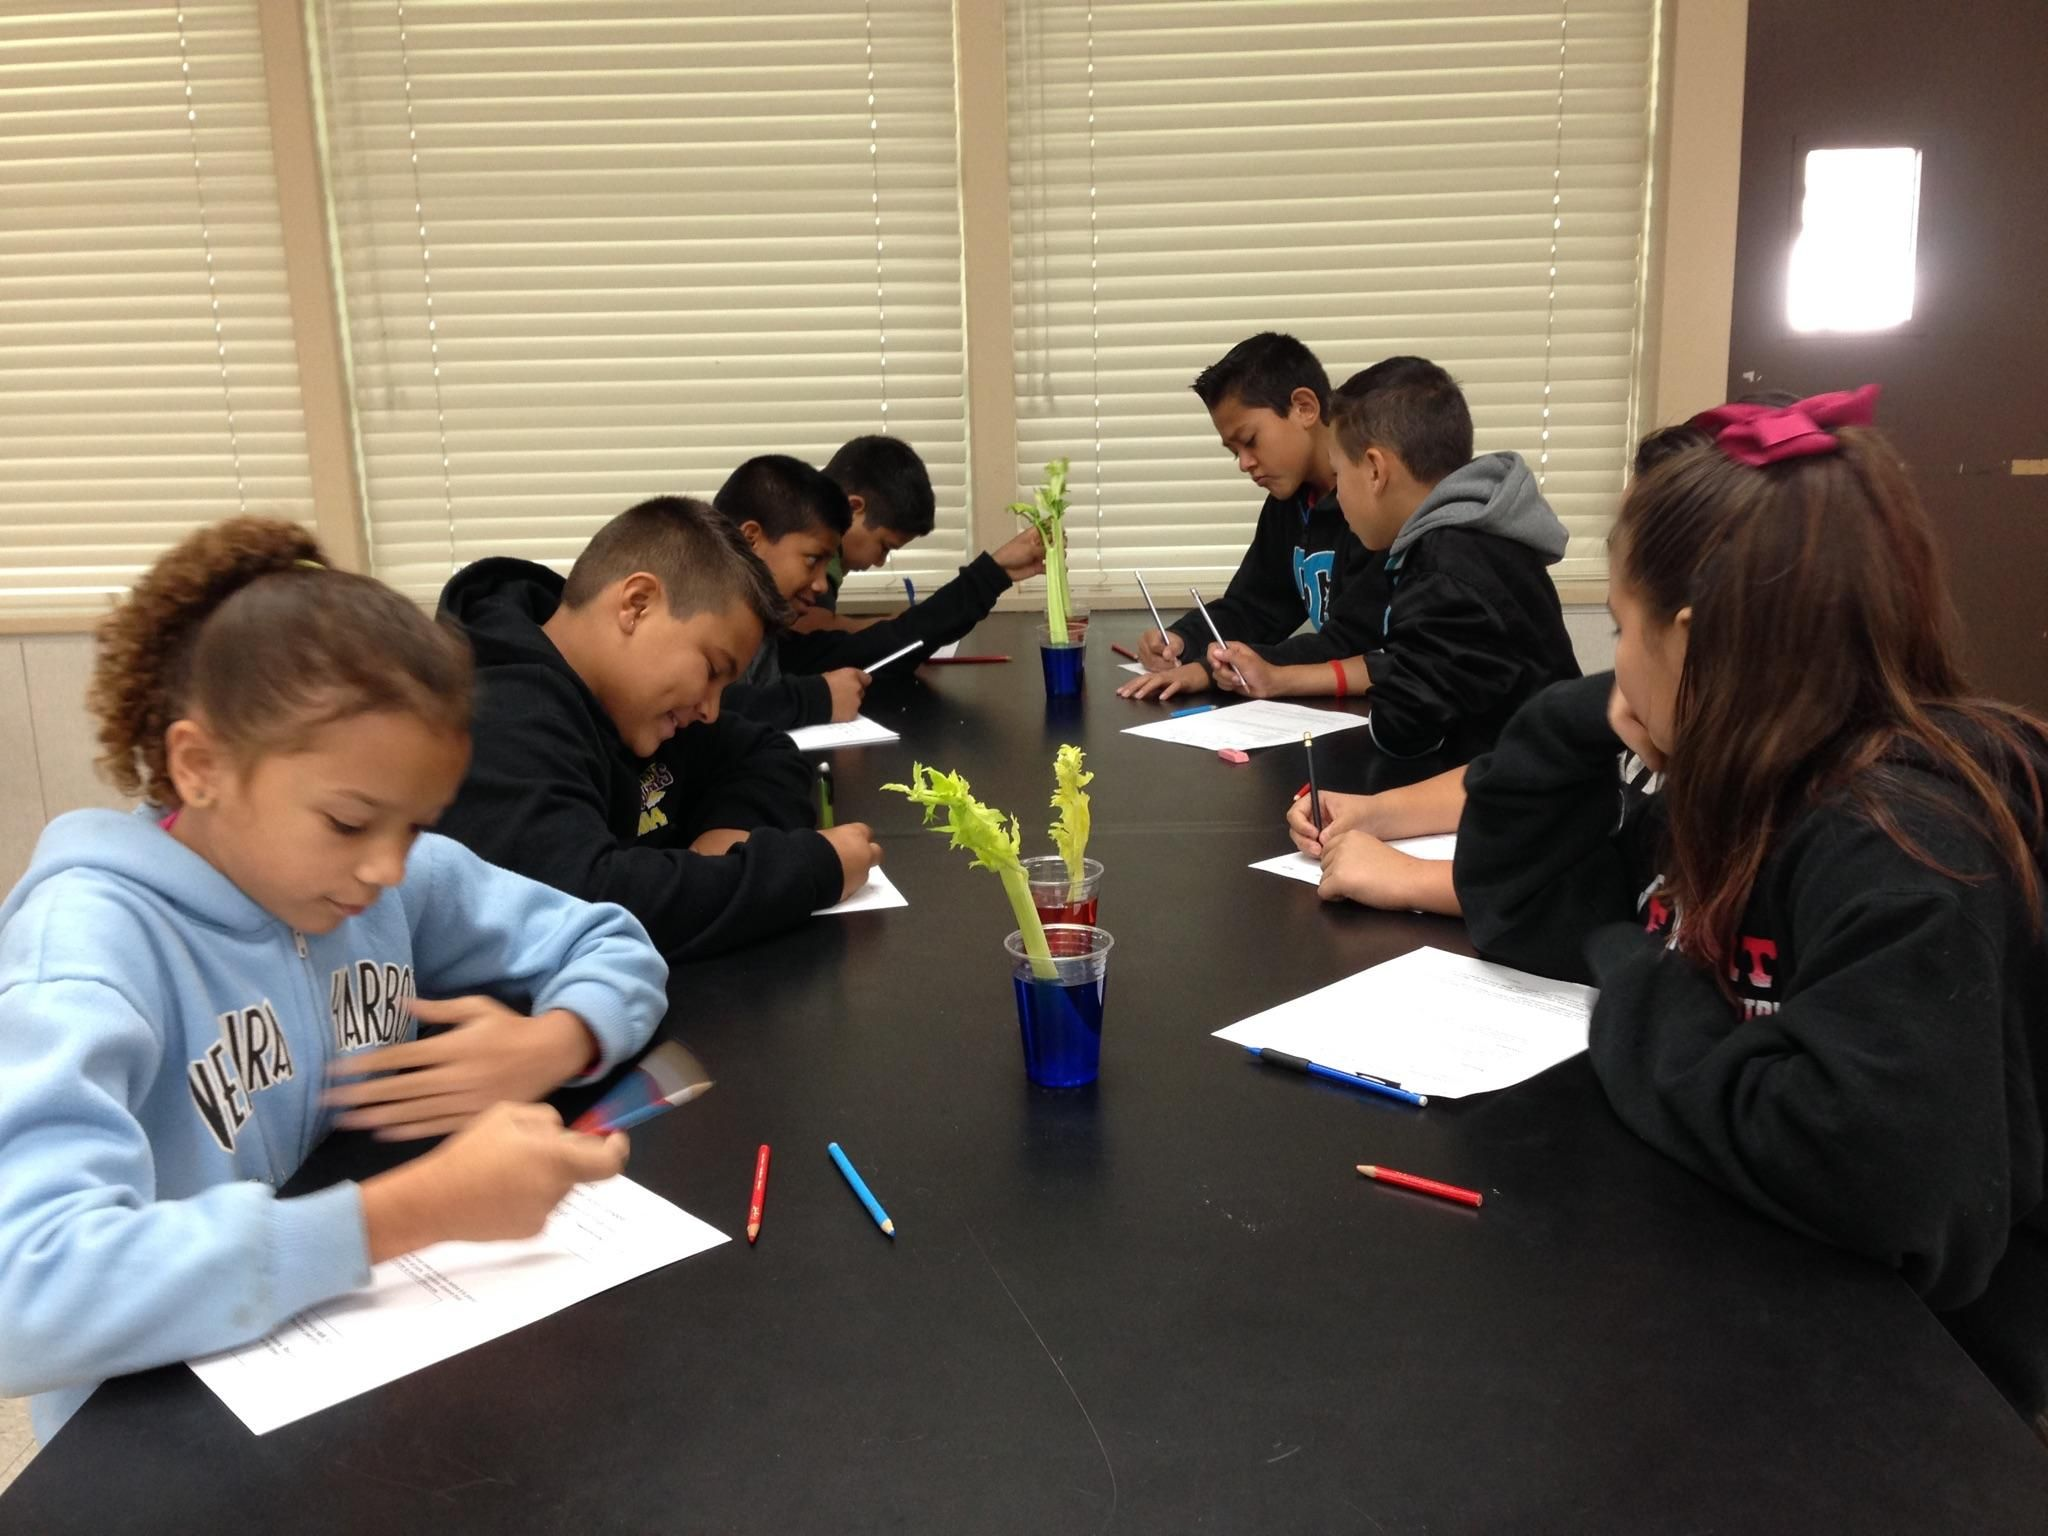 Peachland School Students Regularly Conduct Experiments In